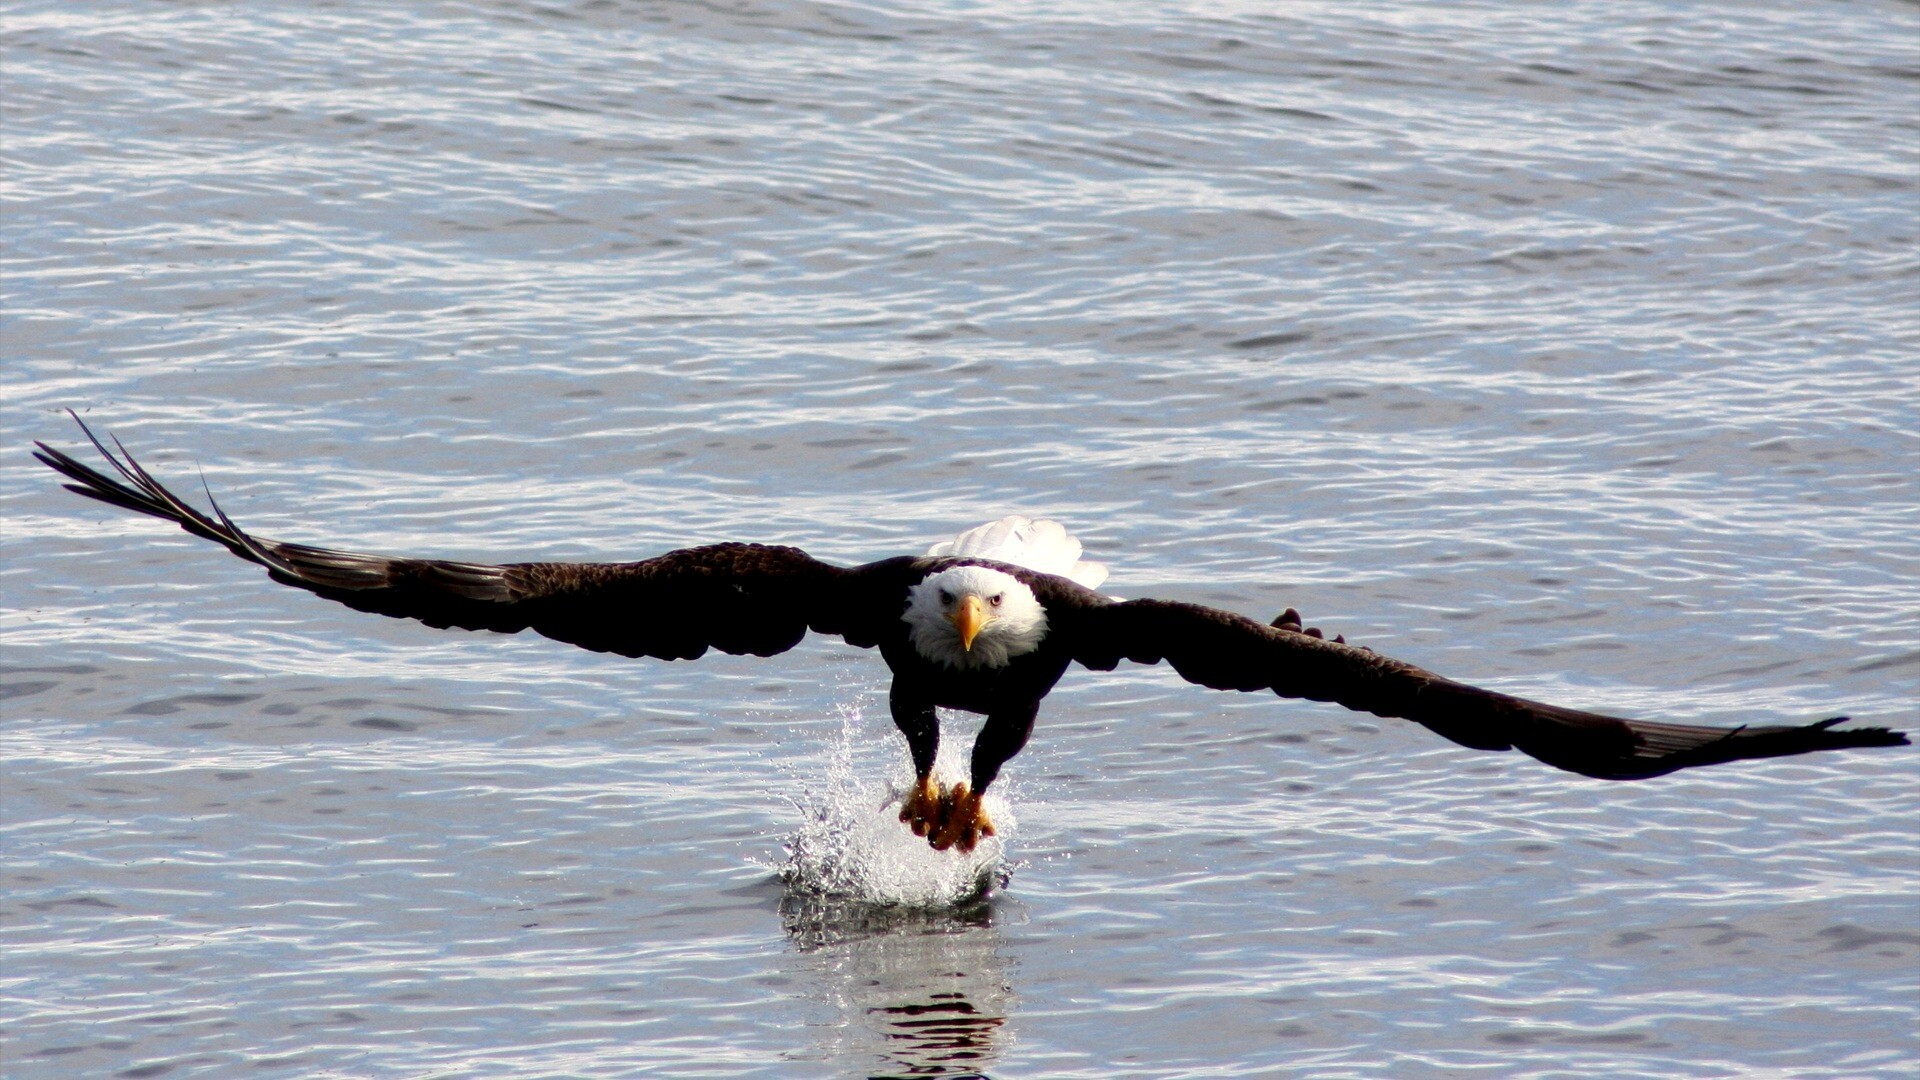 bird eagle hunting fish hd wallpapers hd wallpapers